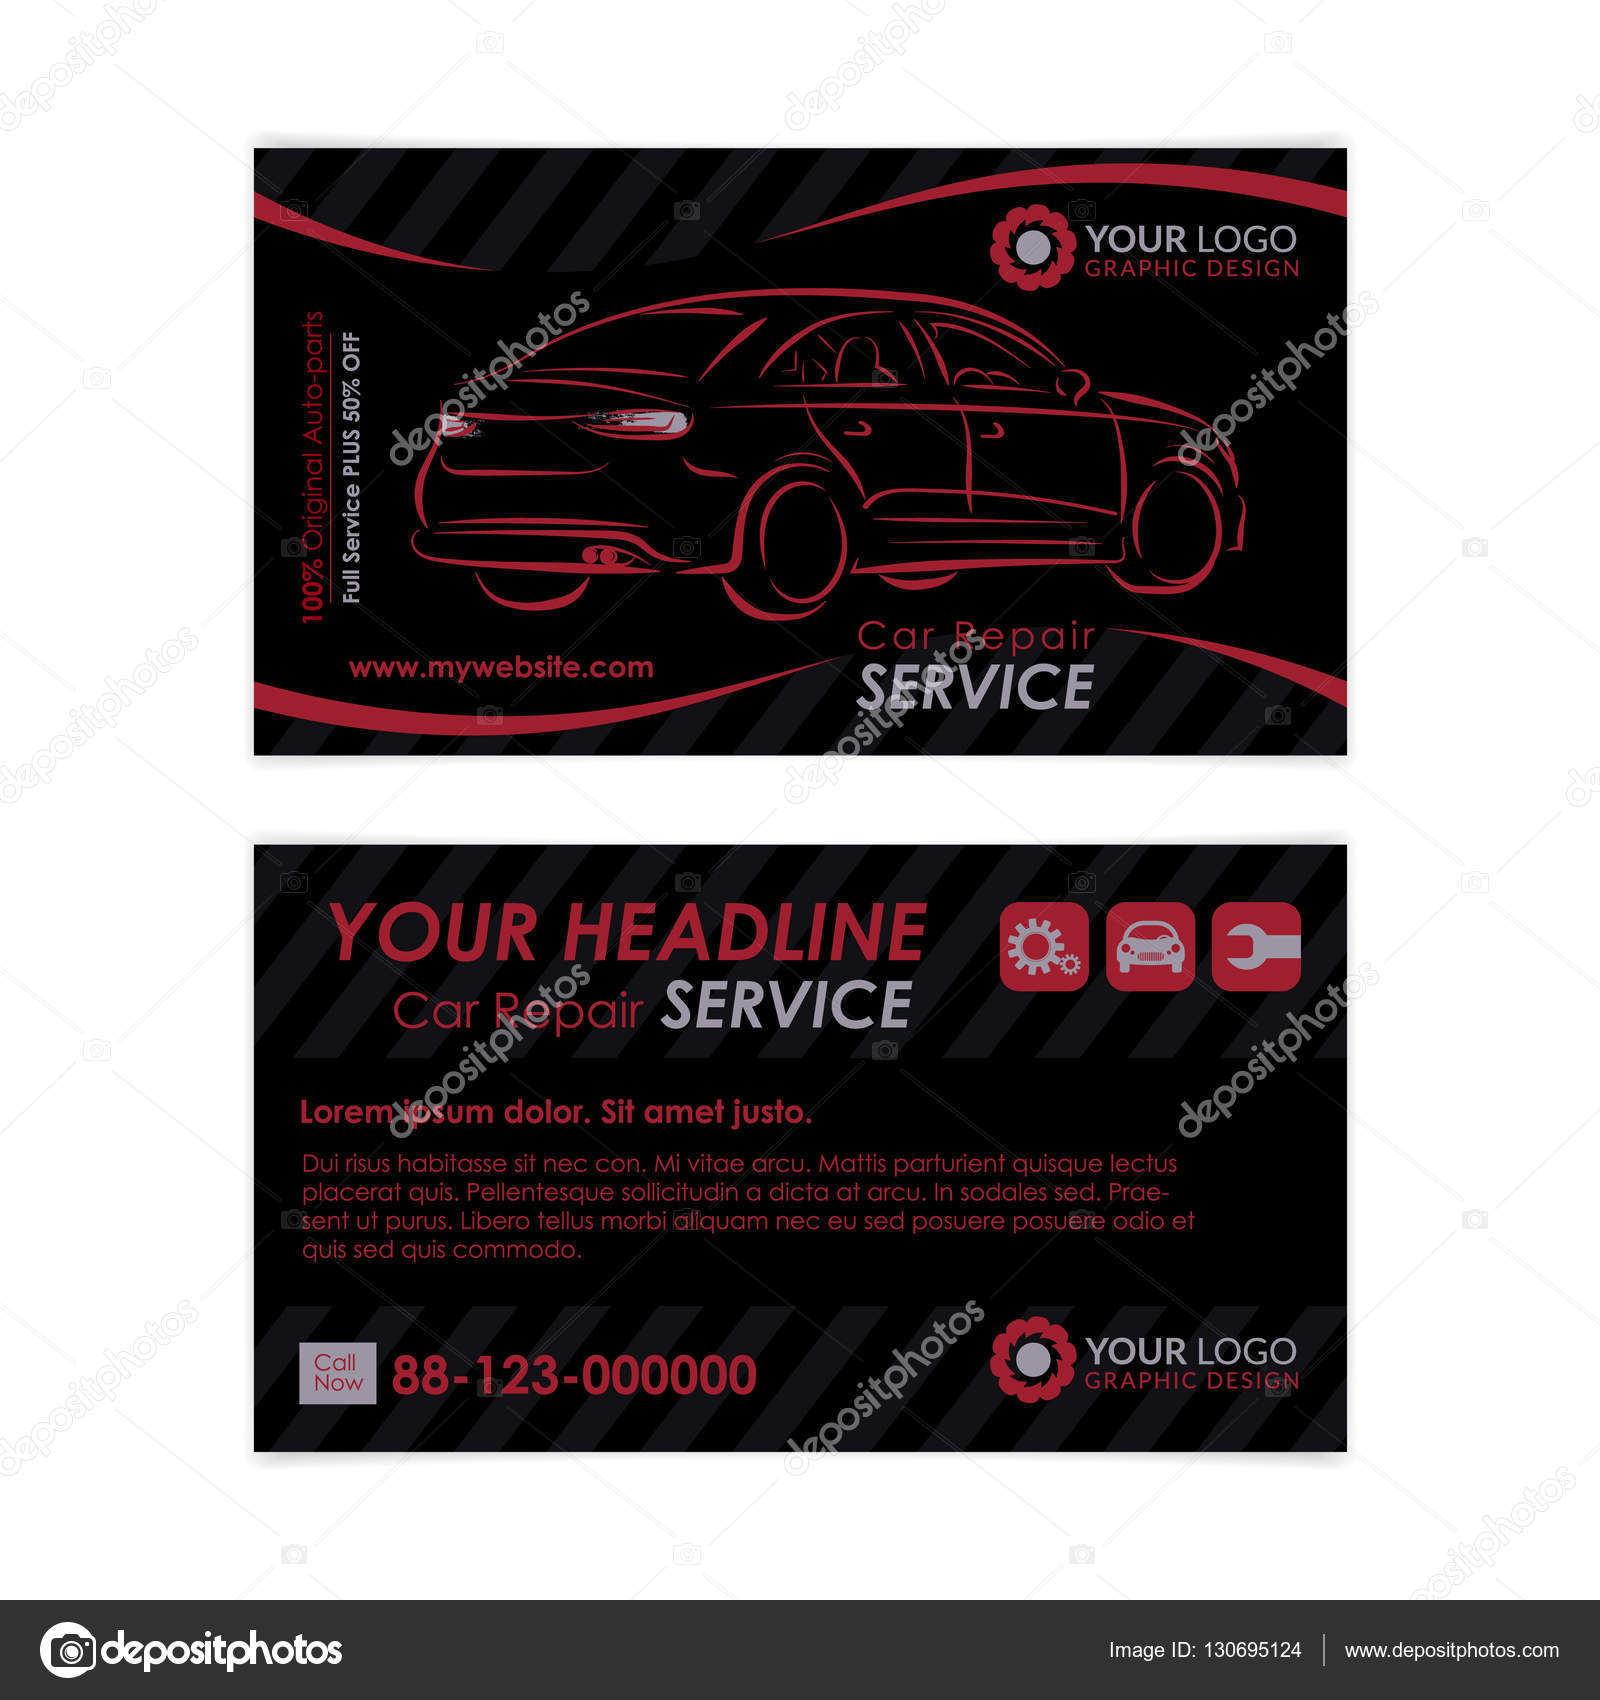 Auto repair business card template create your own business cards auto repair business card template create your own business cards mockup vector illustration cheaphphosting Images